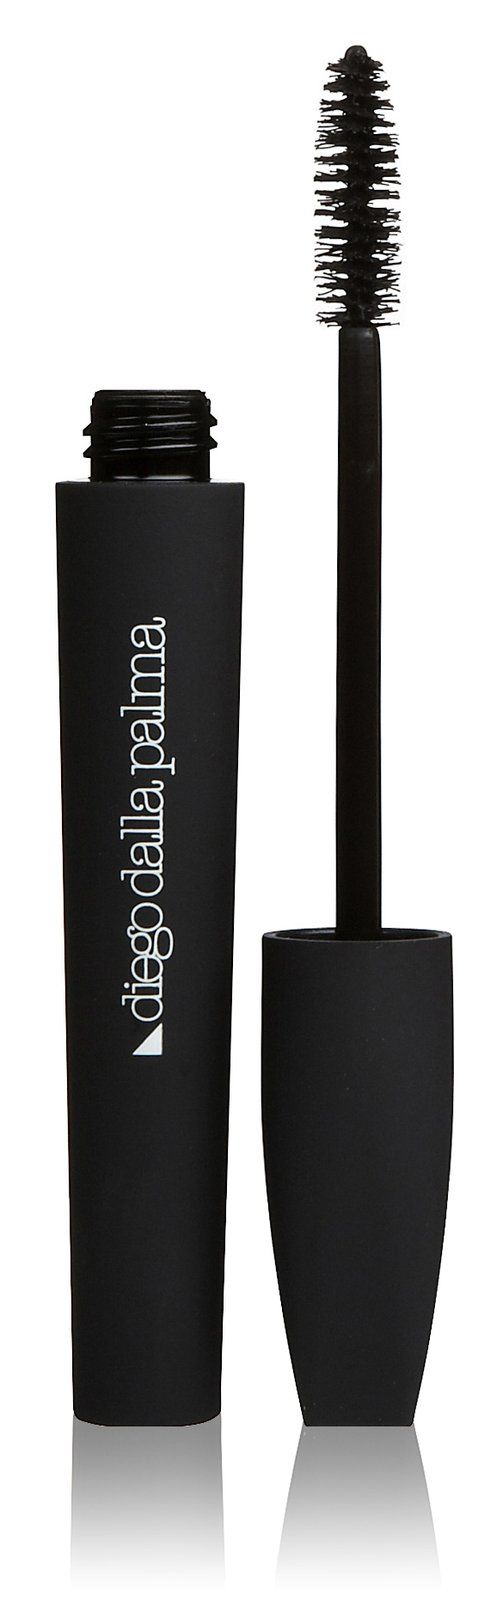 diego dalla palma Semi permanent Mascara, Black - interested in trying